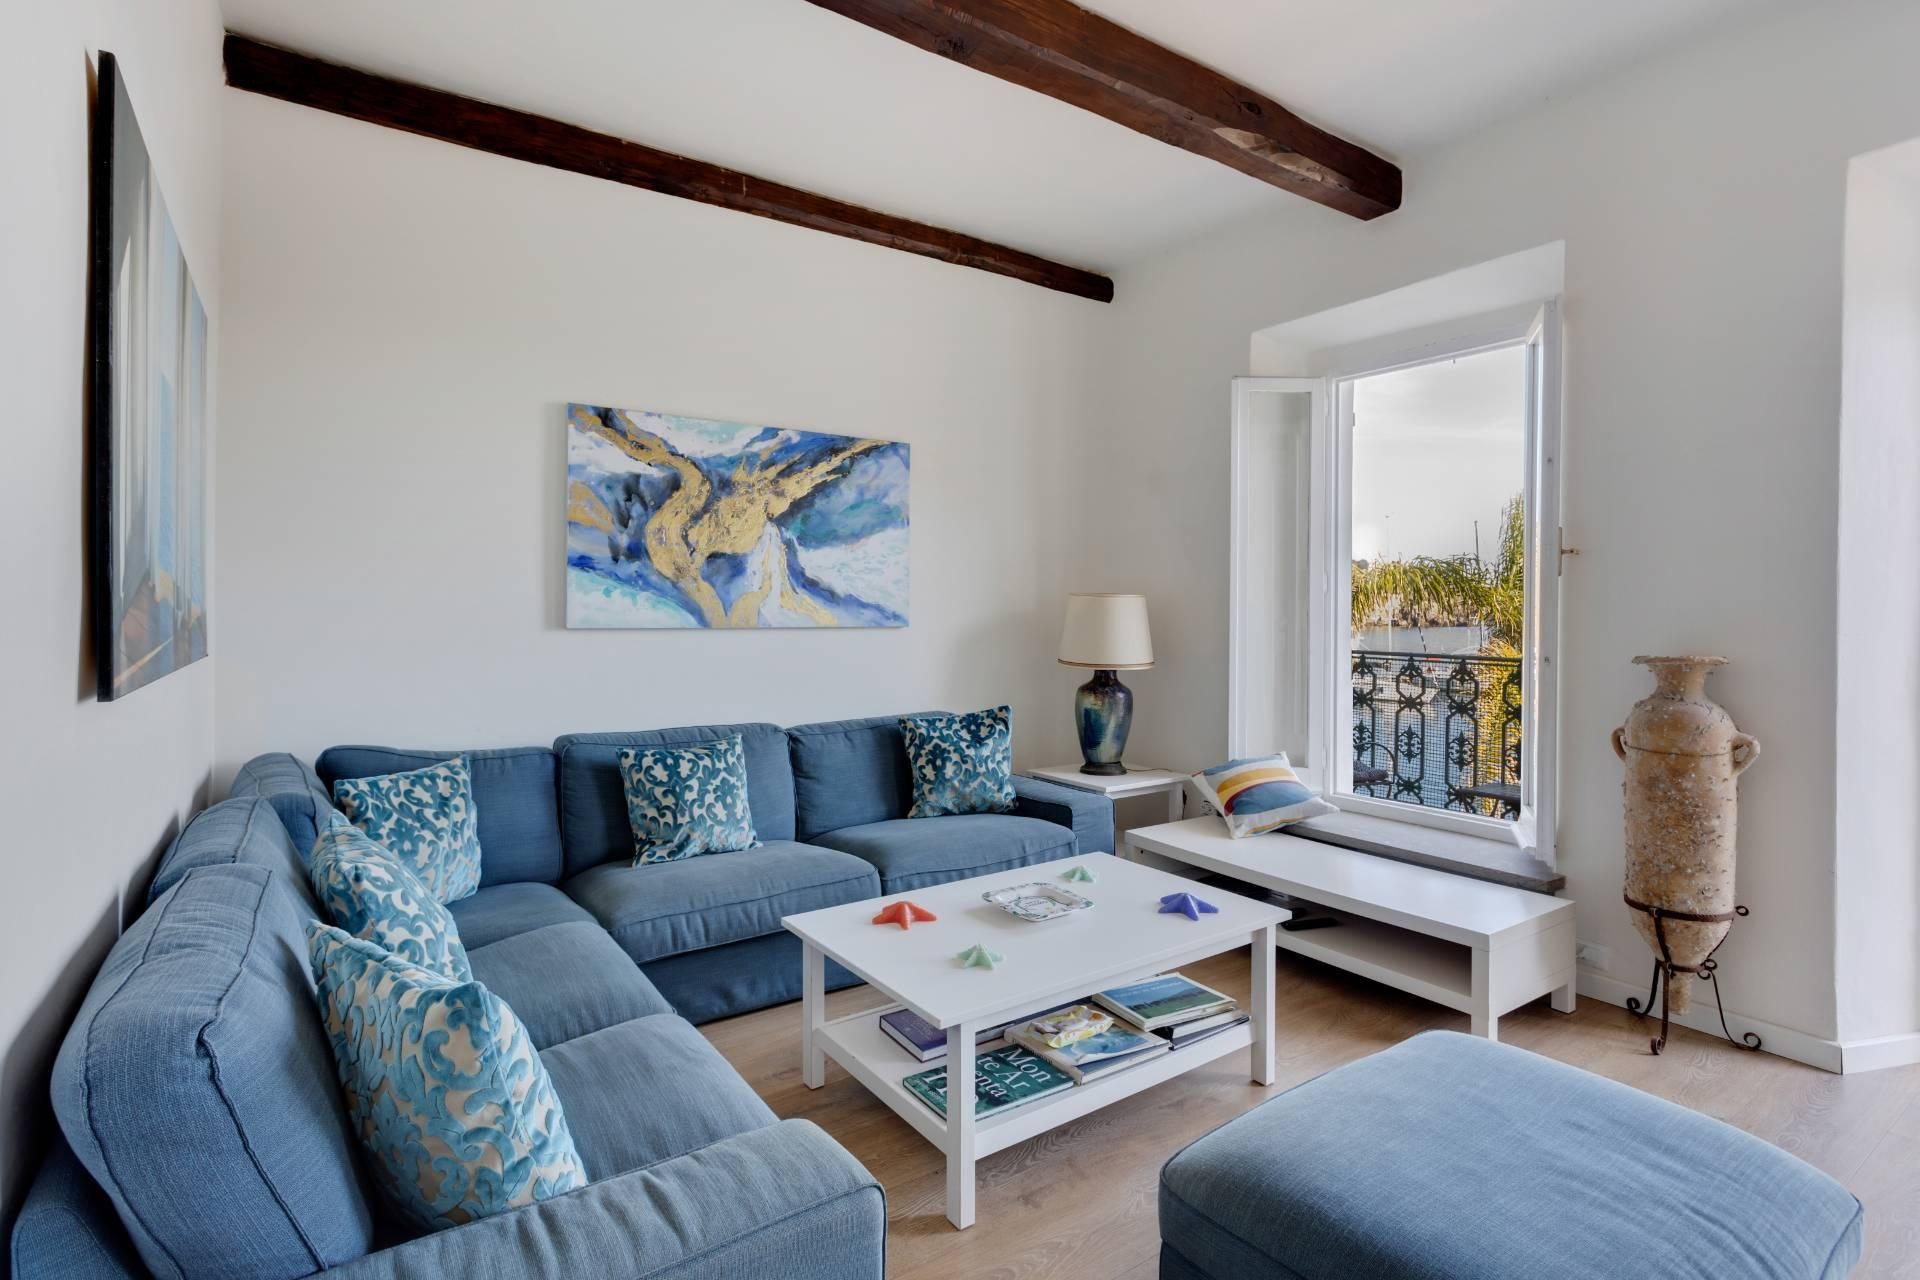 Porto Ercole - Stunning seafront family home with amazing views in historic building - 25